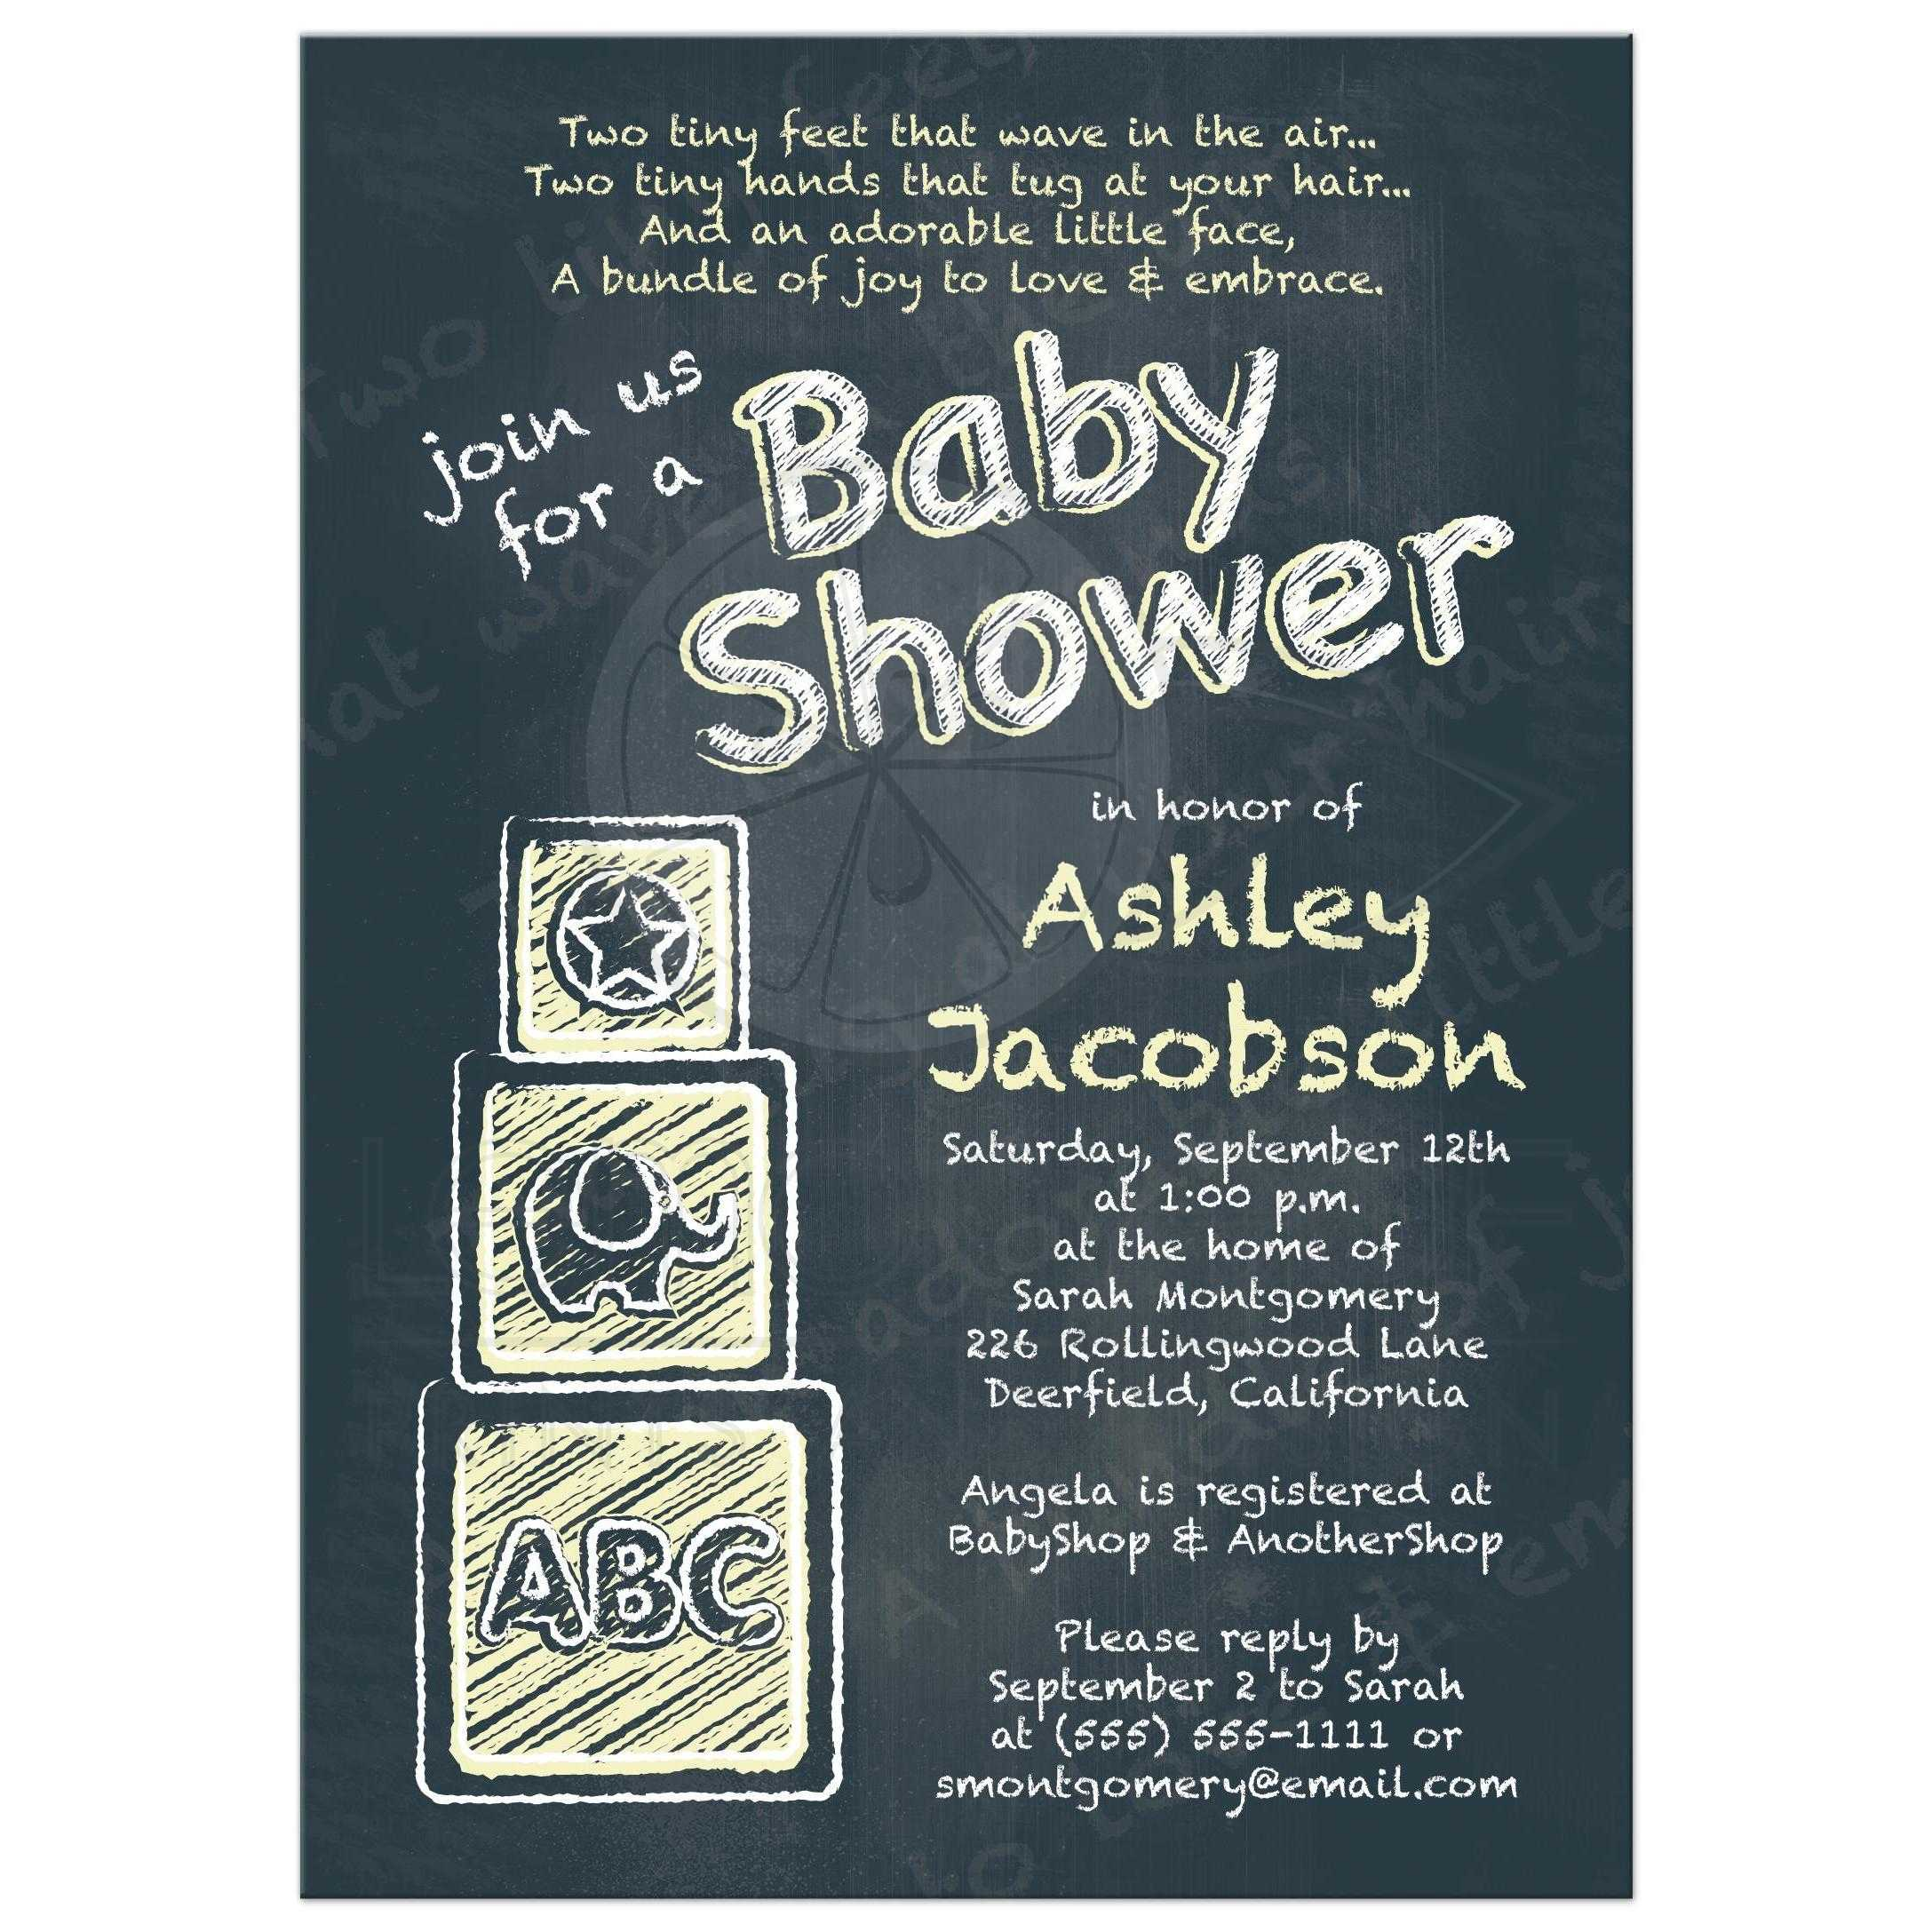 Full Size of Baby Shower:baby Boy Shower Ideas Free Printable Baby Shower Games Free Baby Shower Ideas Unique Baby Shower Decorations Baby Girl Themes Unique Baby Shower Ideas Baby Shower Themes For Girls Baby Shower Card Message Ideas